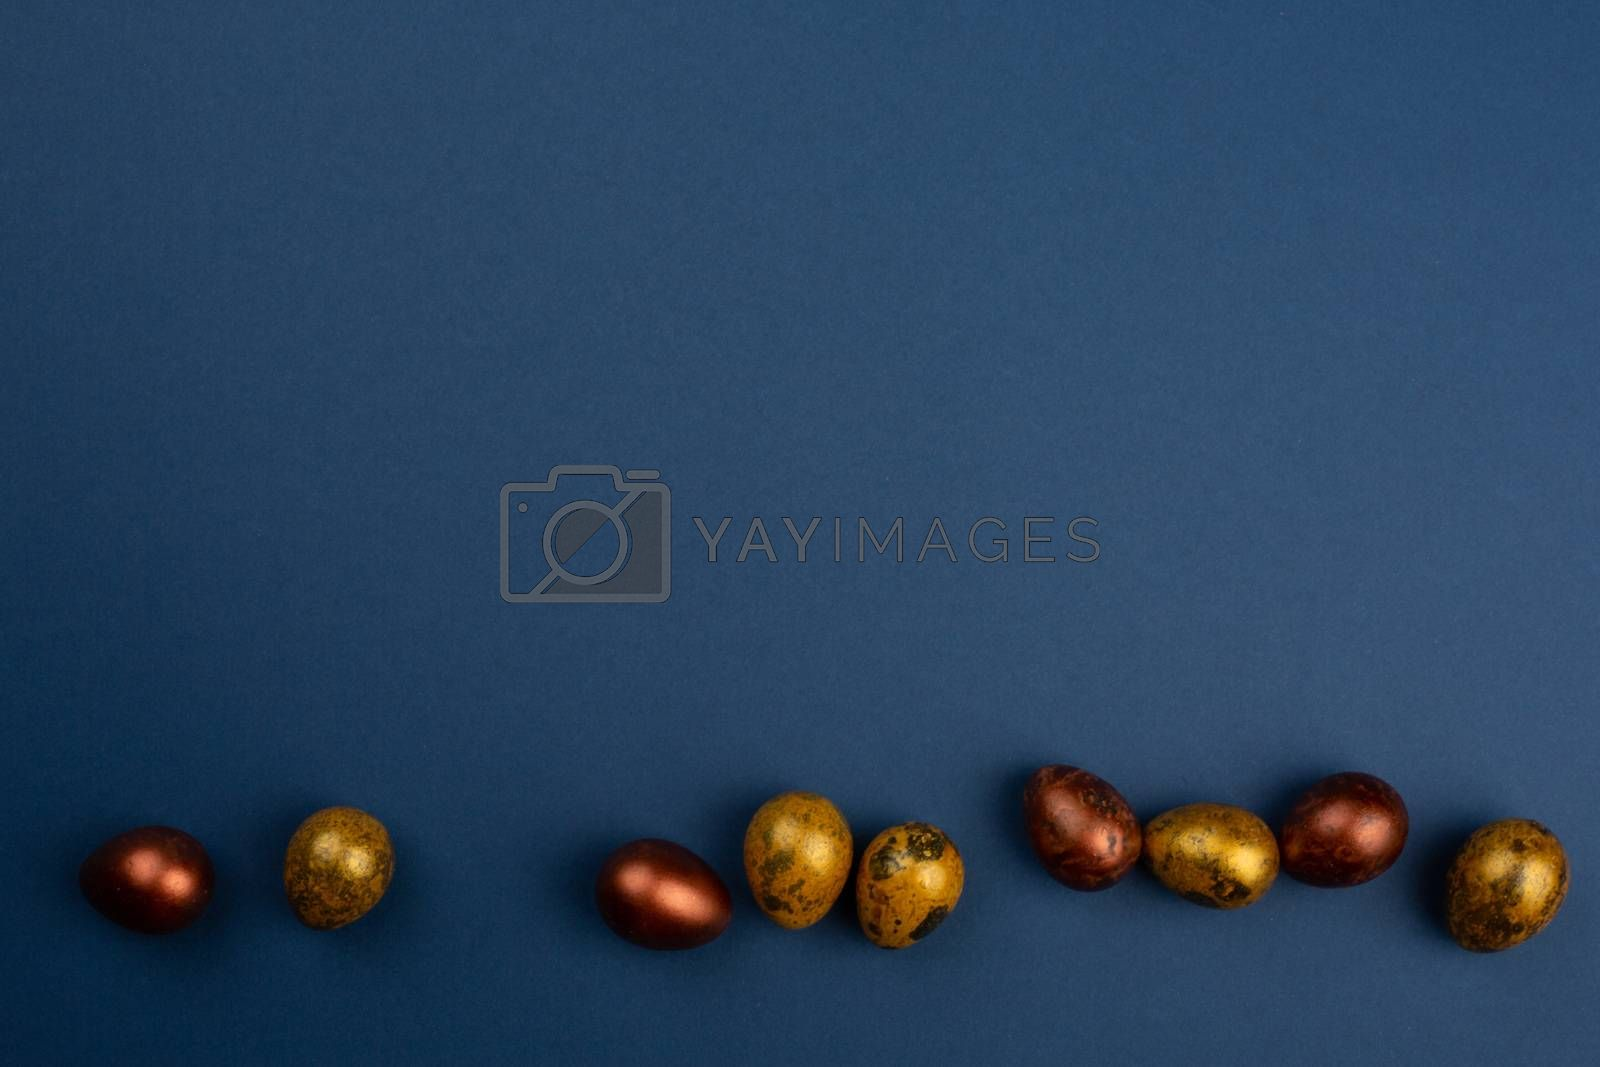 Small golden quail easter eggs in a row on blue background copy space for text